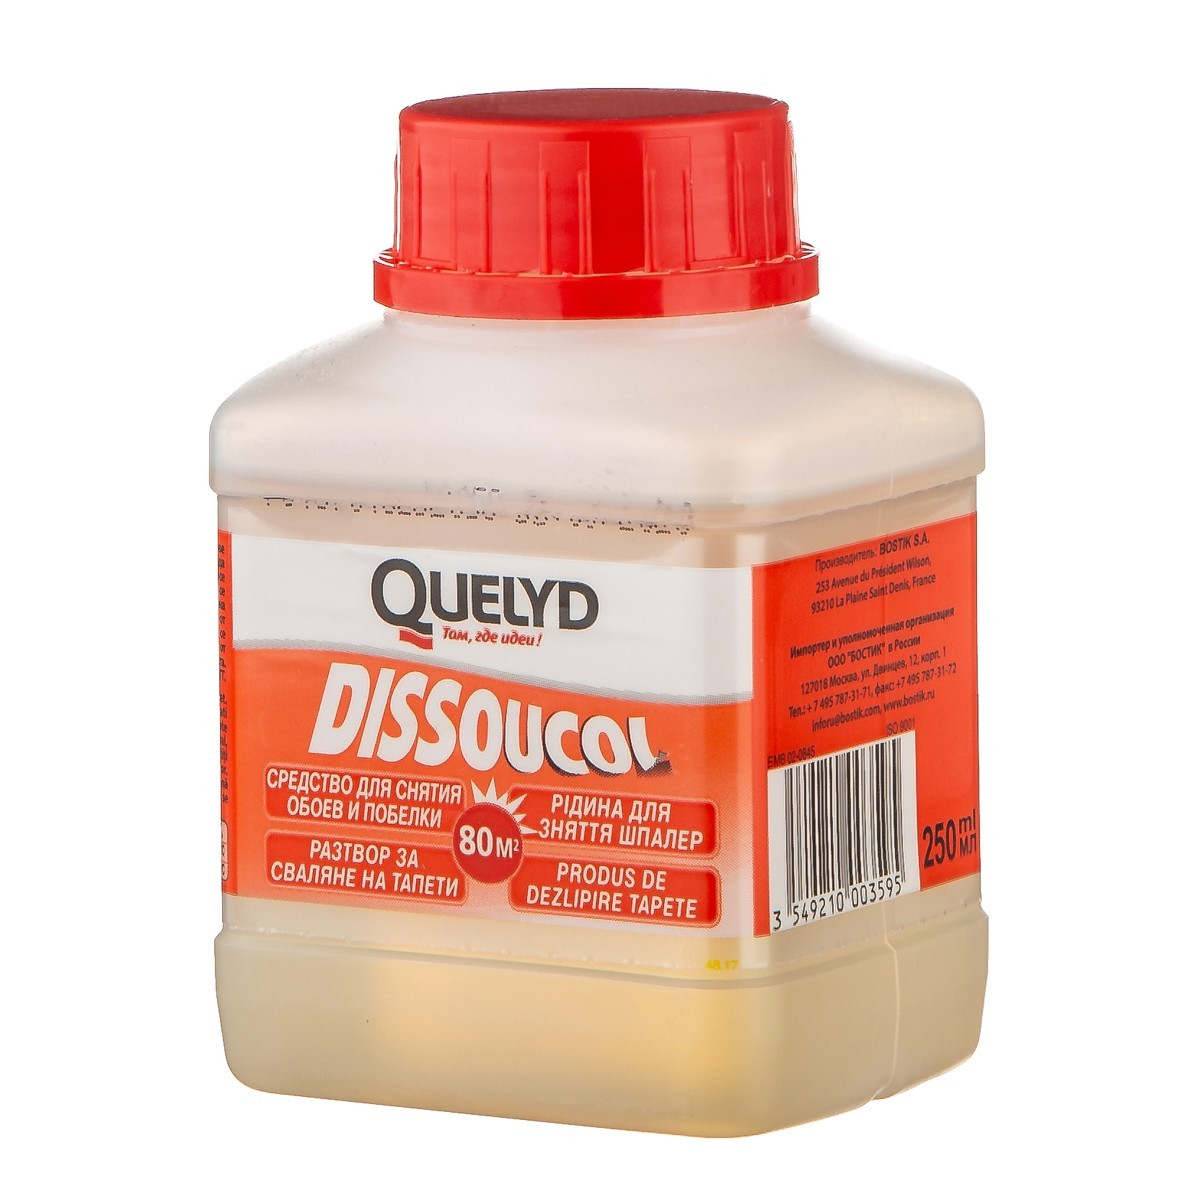 Quelyd Dissoucol